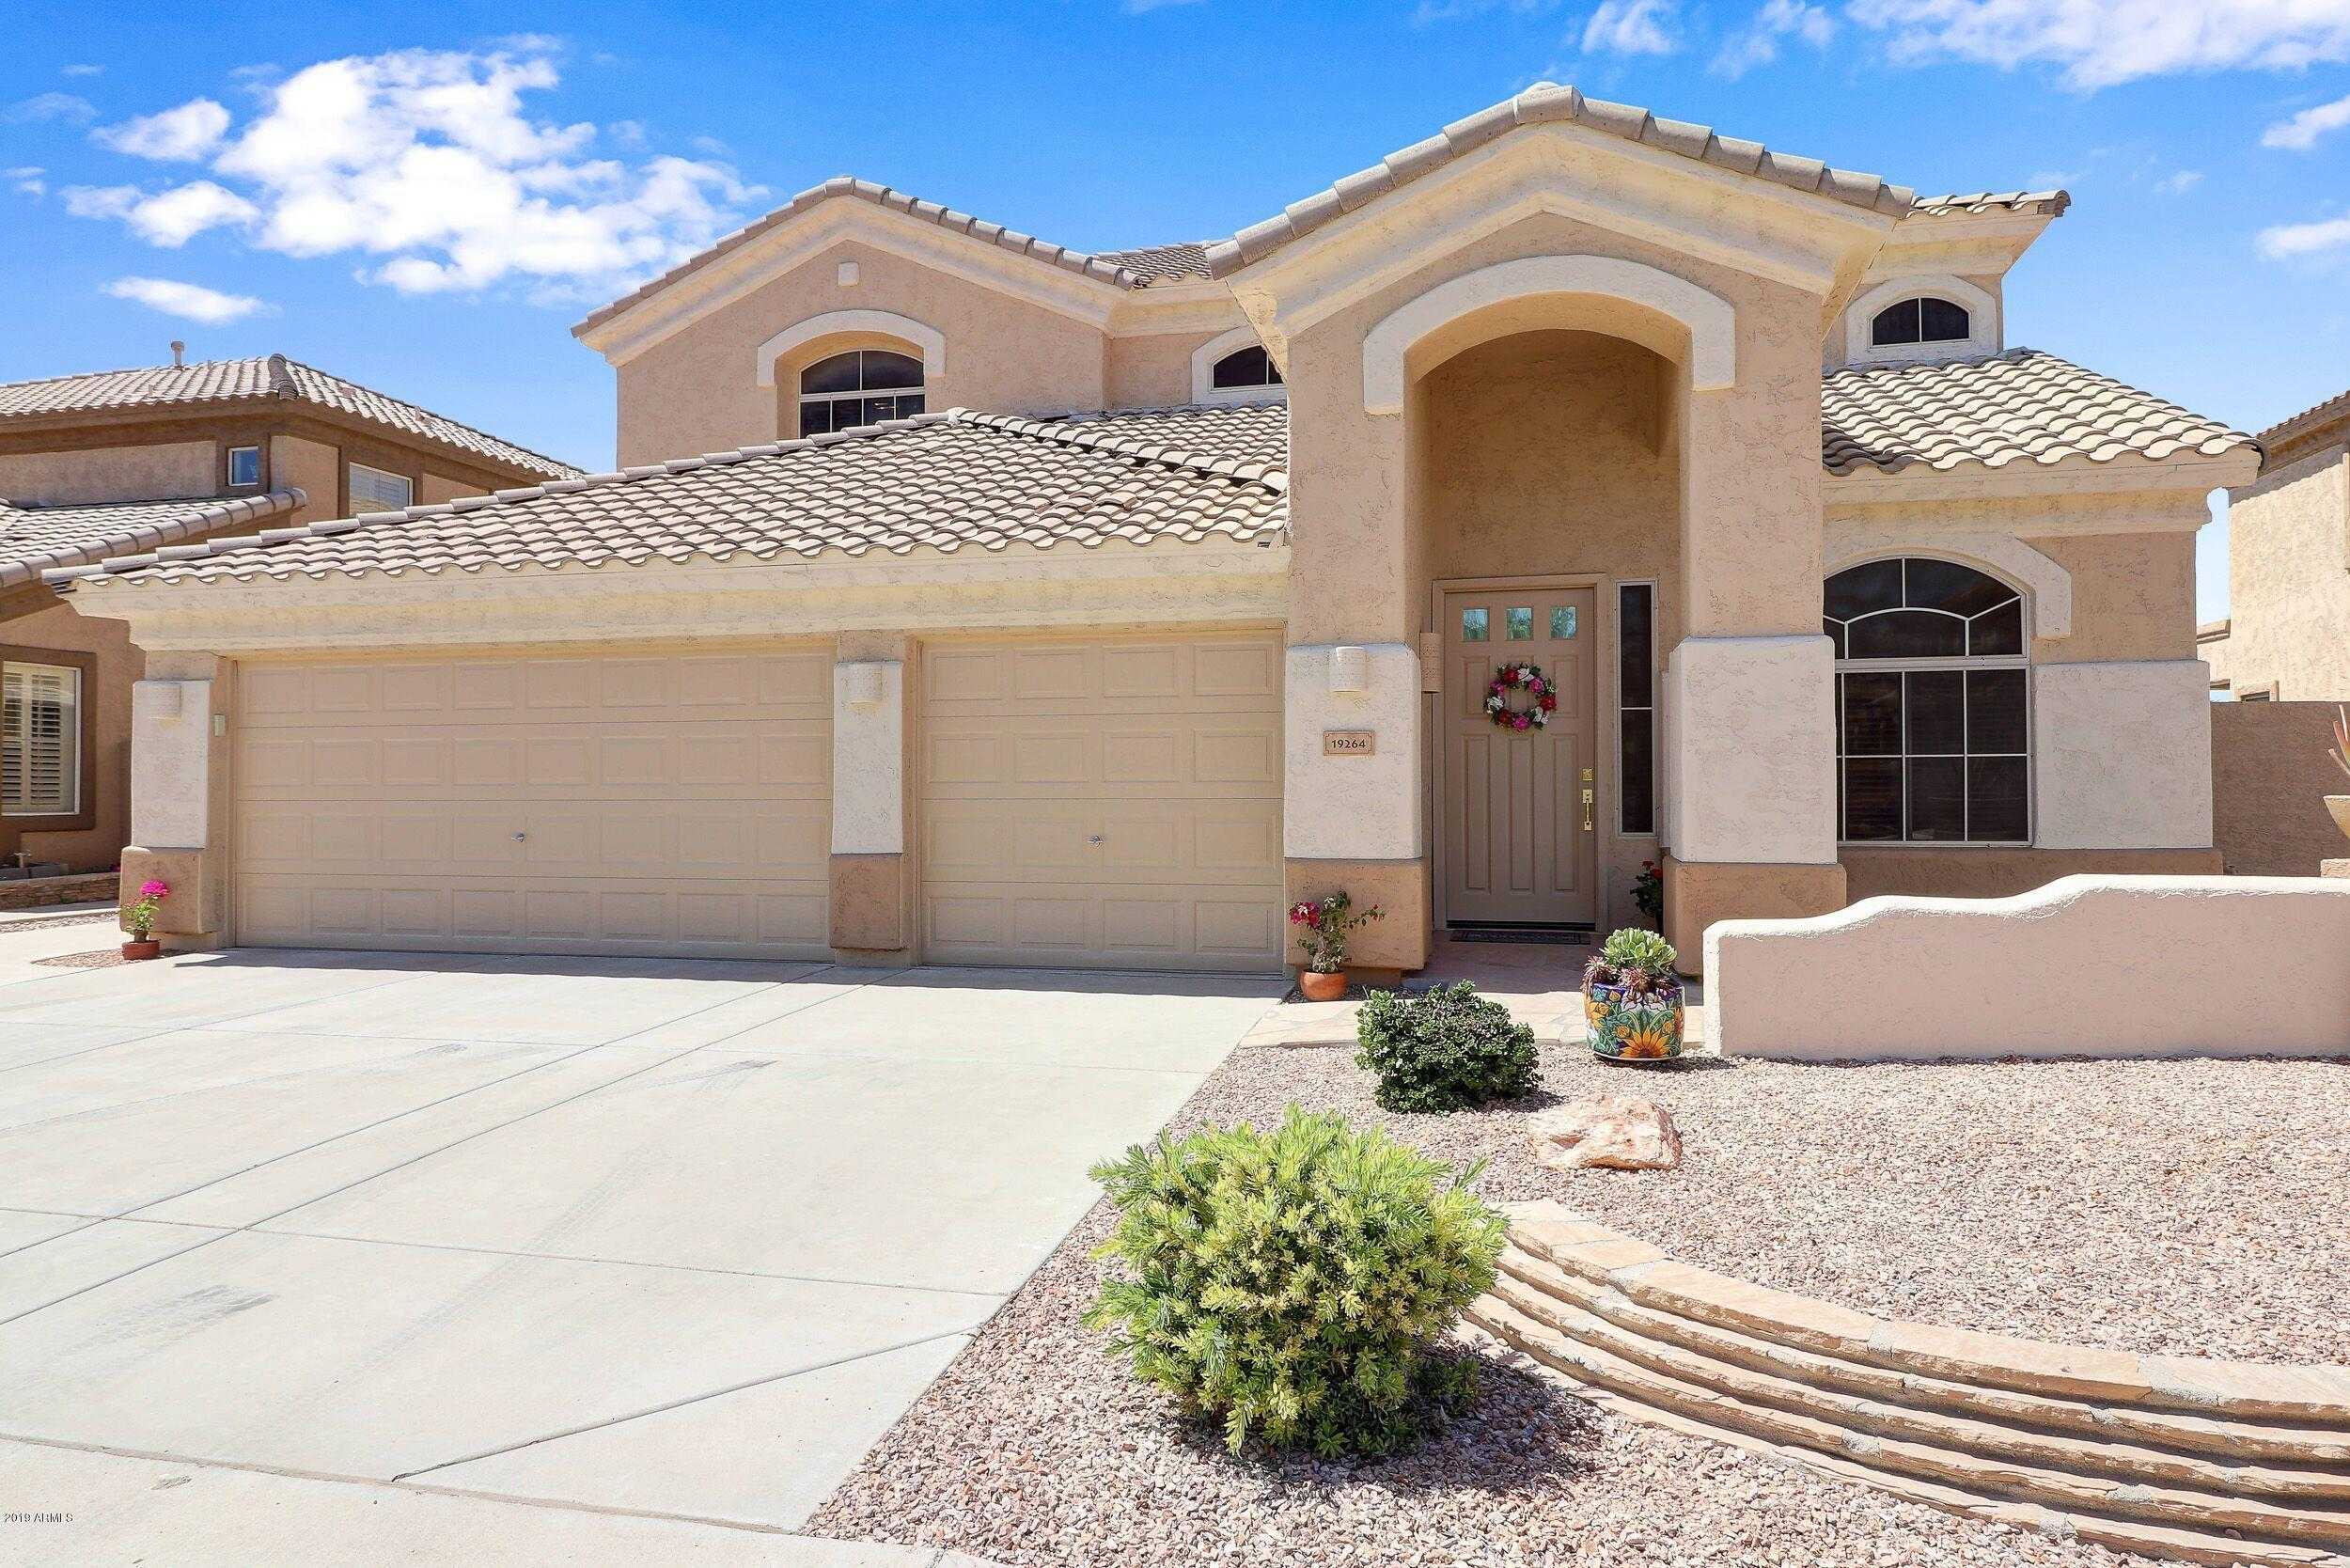 $405,000 - 5Br/4Ba - Home for Sale in Highlands At Arrowhead Ranch 3, Glendale